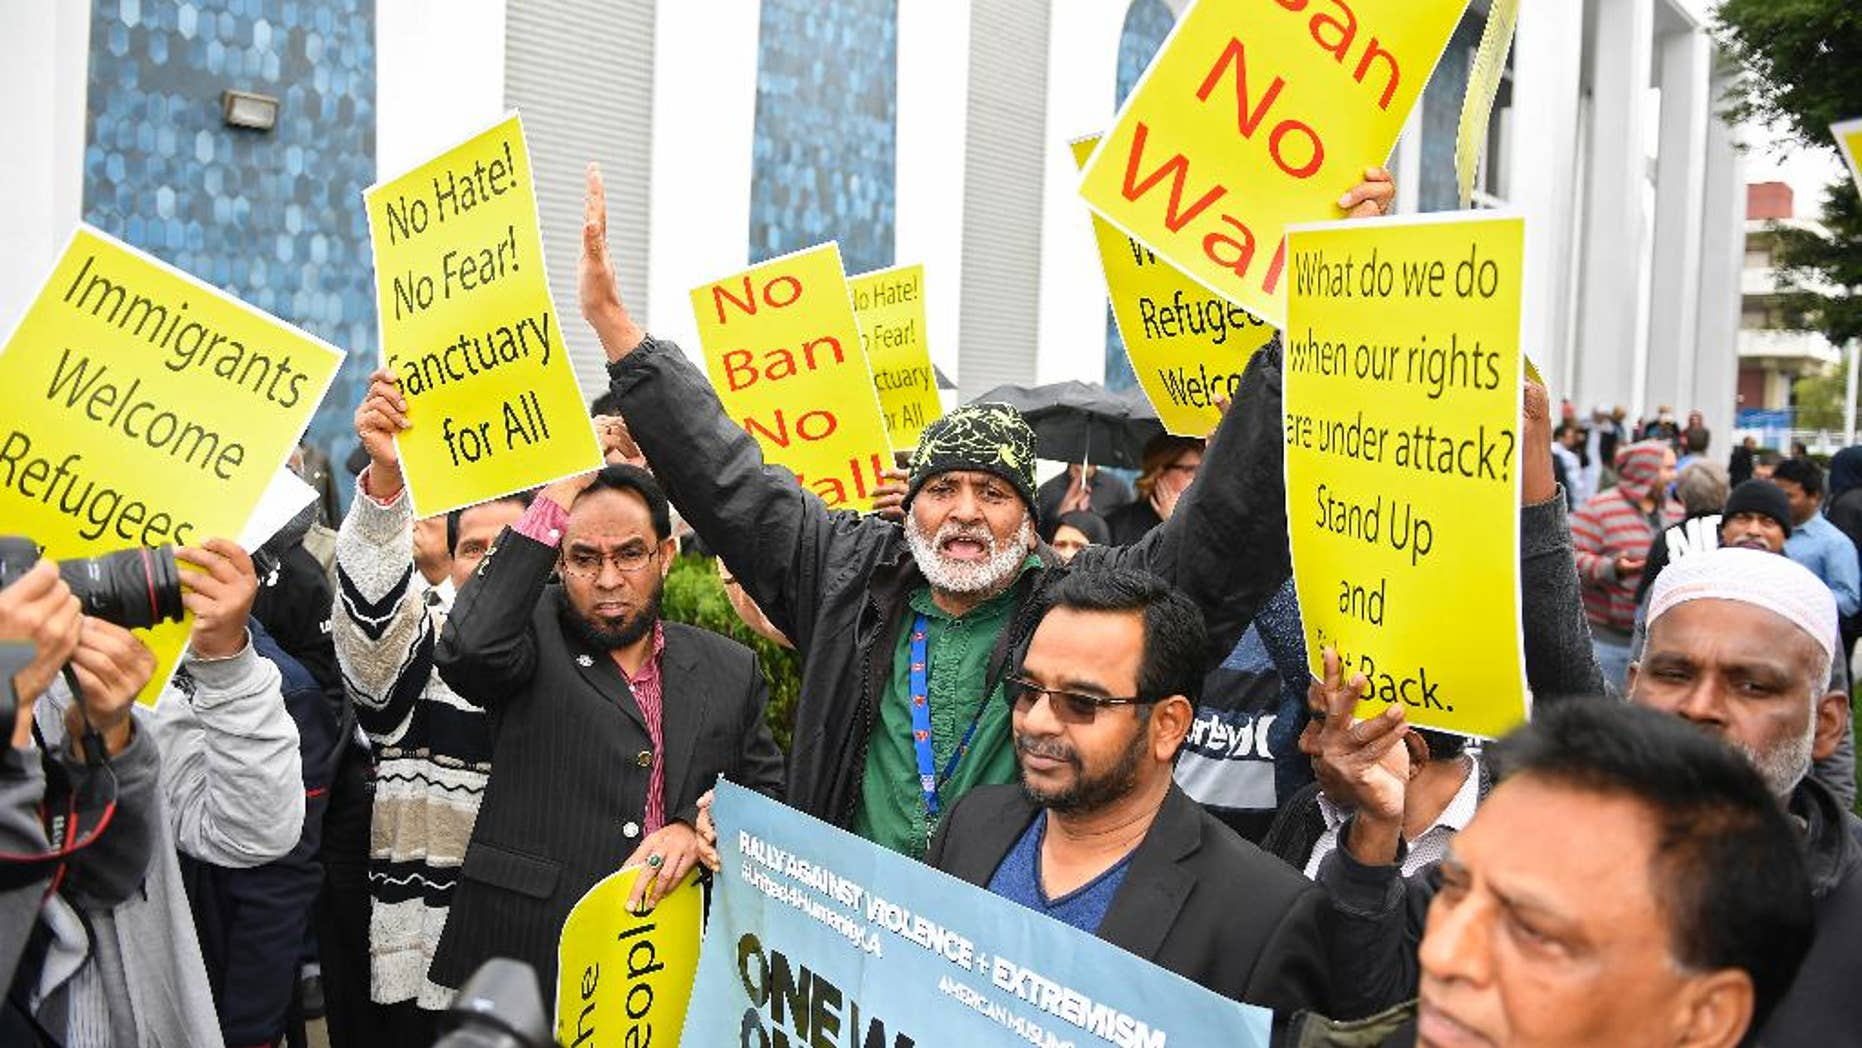 Supporters chant during a rally where civil rights, faith groups, labor, and community advocates and leaders gathered at the Islamic Center of Southern California as part of a nationwide day of unity, Friday, Feb. 3, 2017, in Los Angeles, to respond to President Trump's slew of executive orders targeting refugees and immigrants. The show of support and news conference was put on by the Coalition for Humane Immigrant Rights. (AP Photo/Mark J. Terrill)